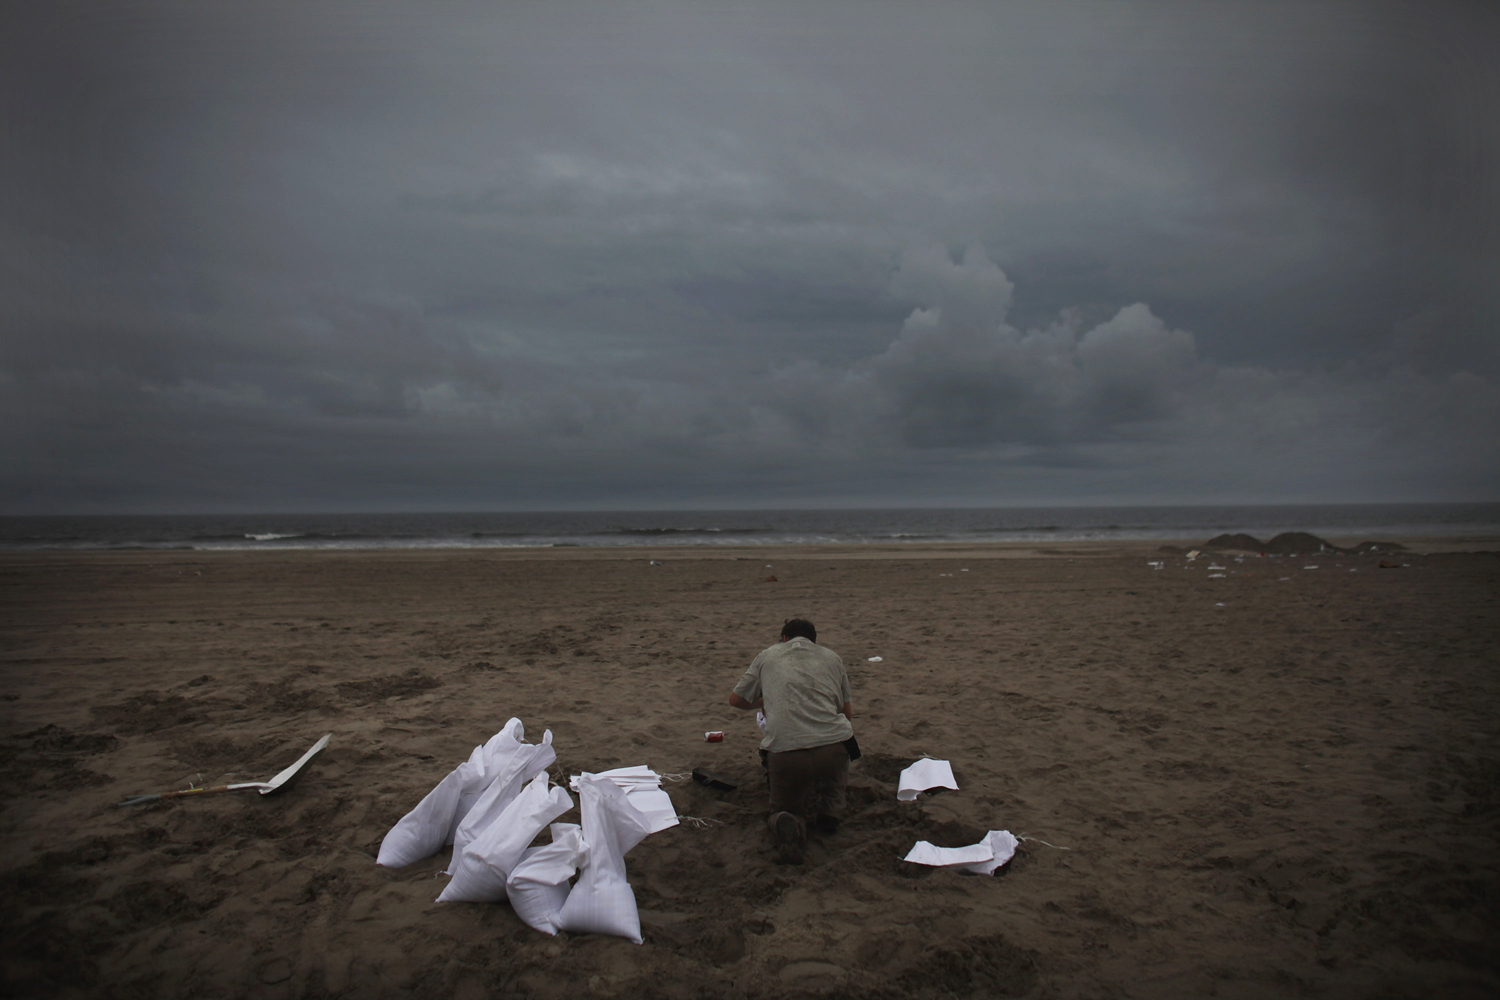 August 27, 2011, New York, NY. A man fills sand bags at 128th St. beach in the Rockaways in preparation for Hurricane Irene.